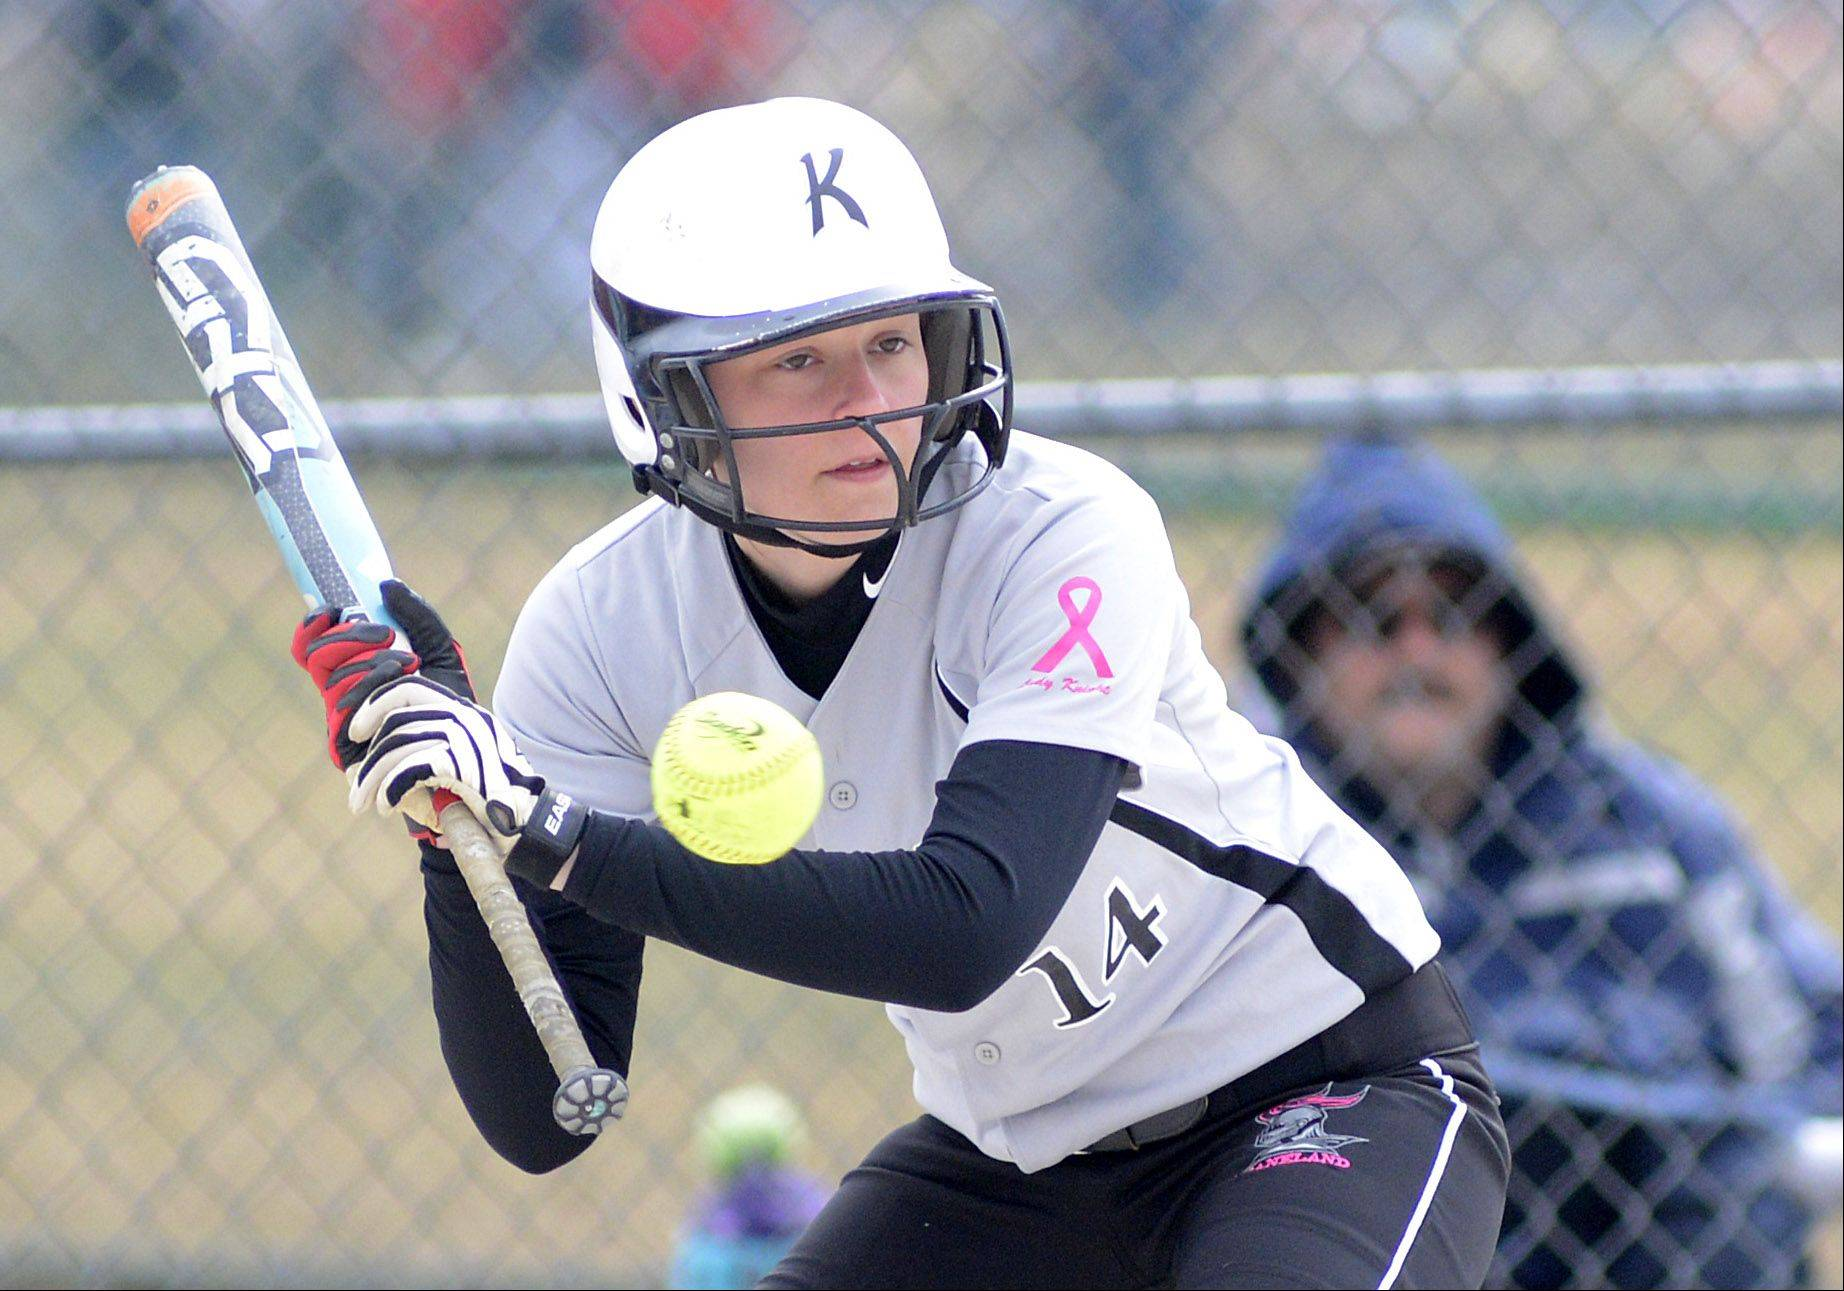 Kaneland's Hayley Contorno up to bat in the first inning on Saturday, April 6.